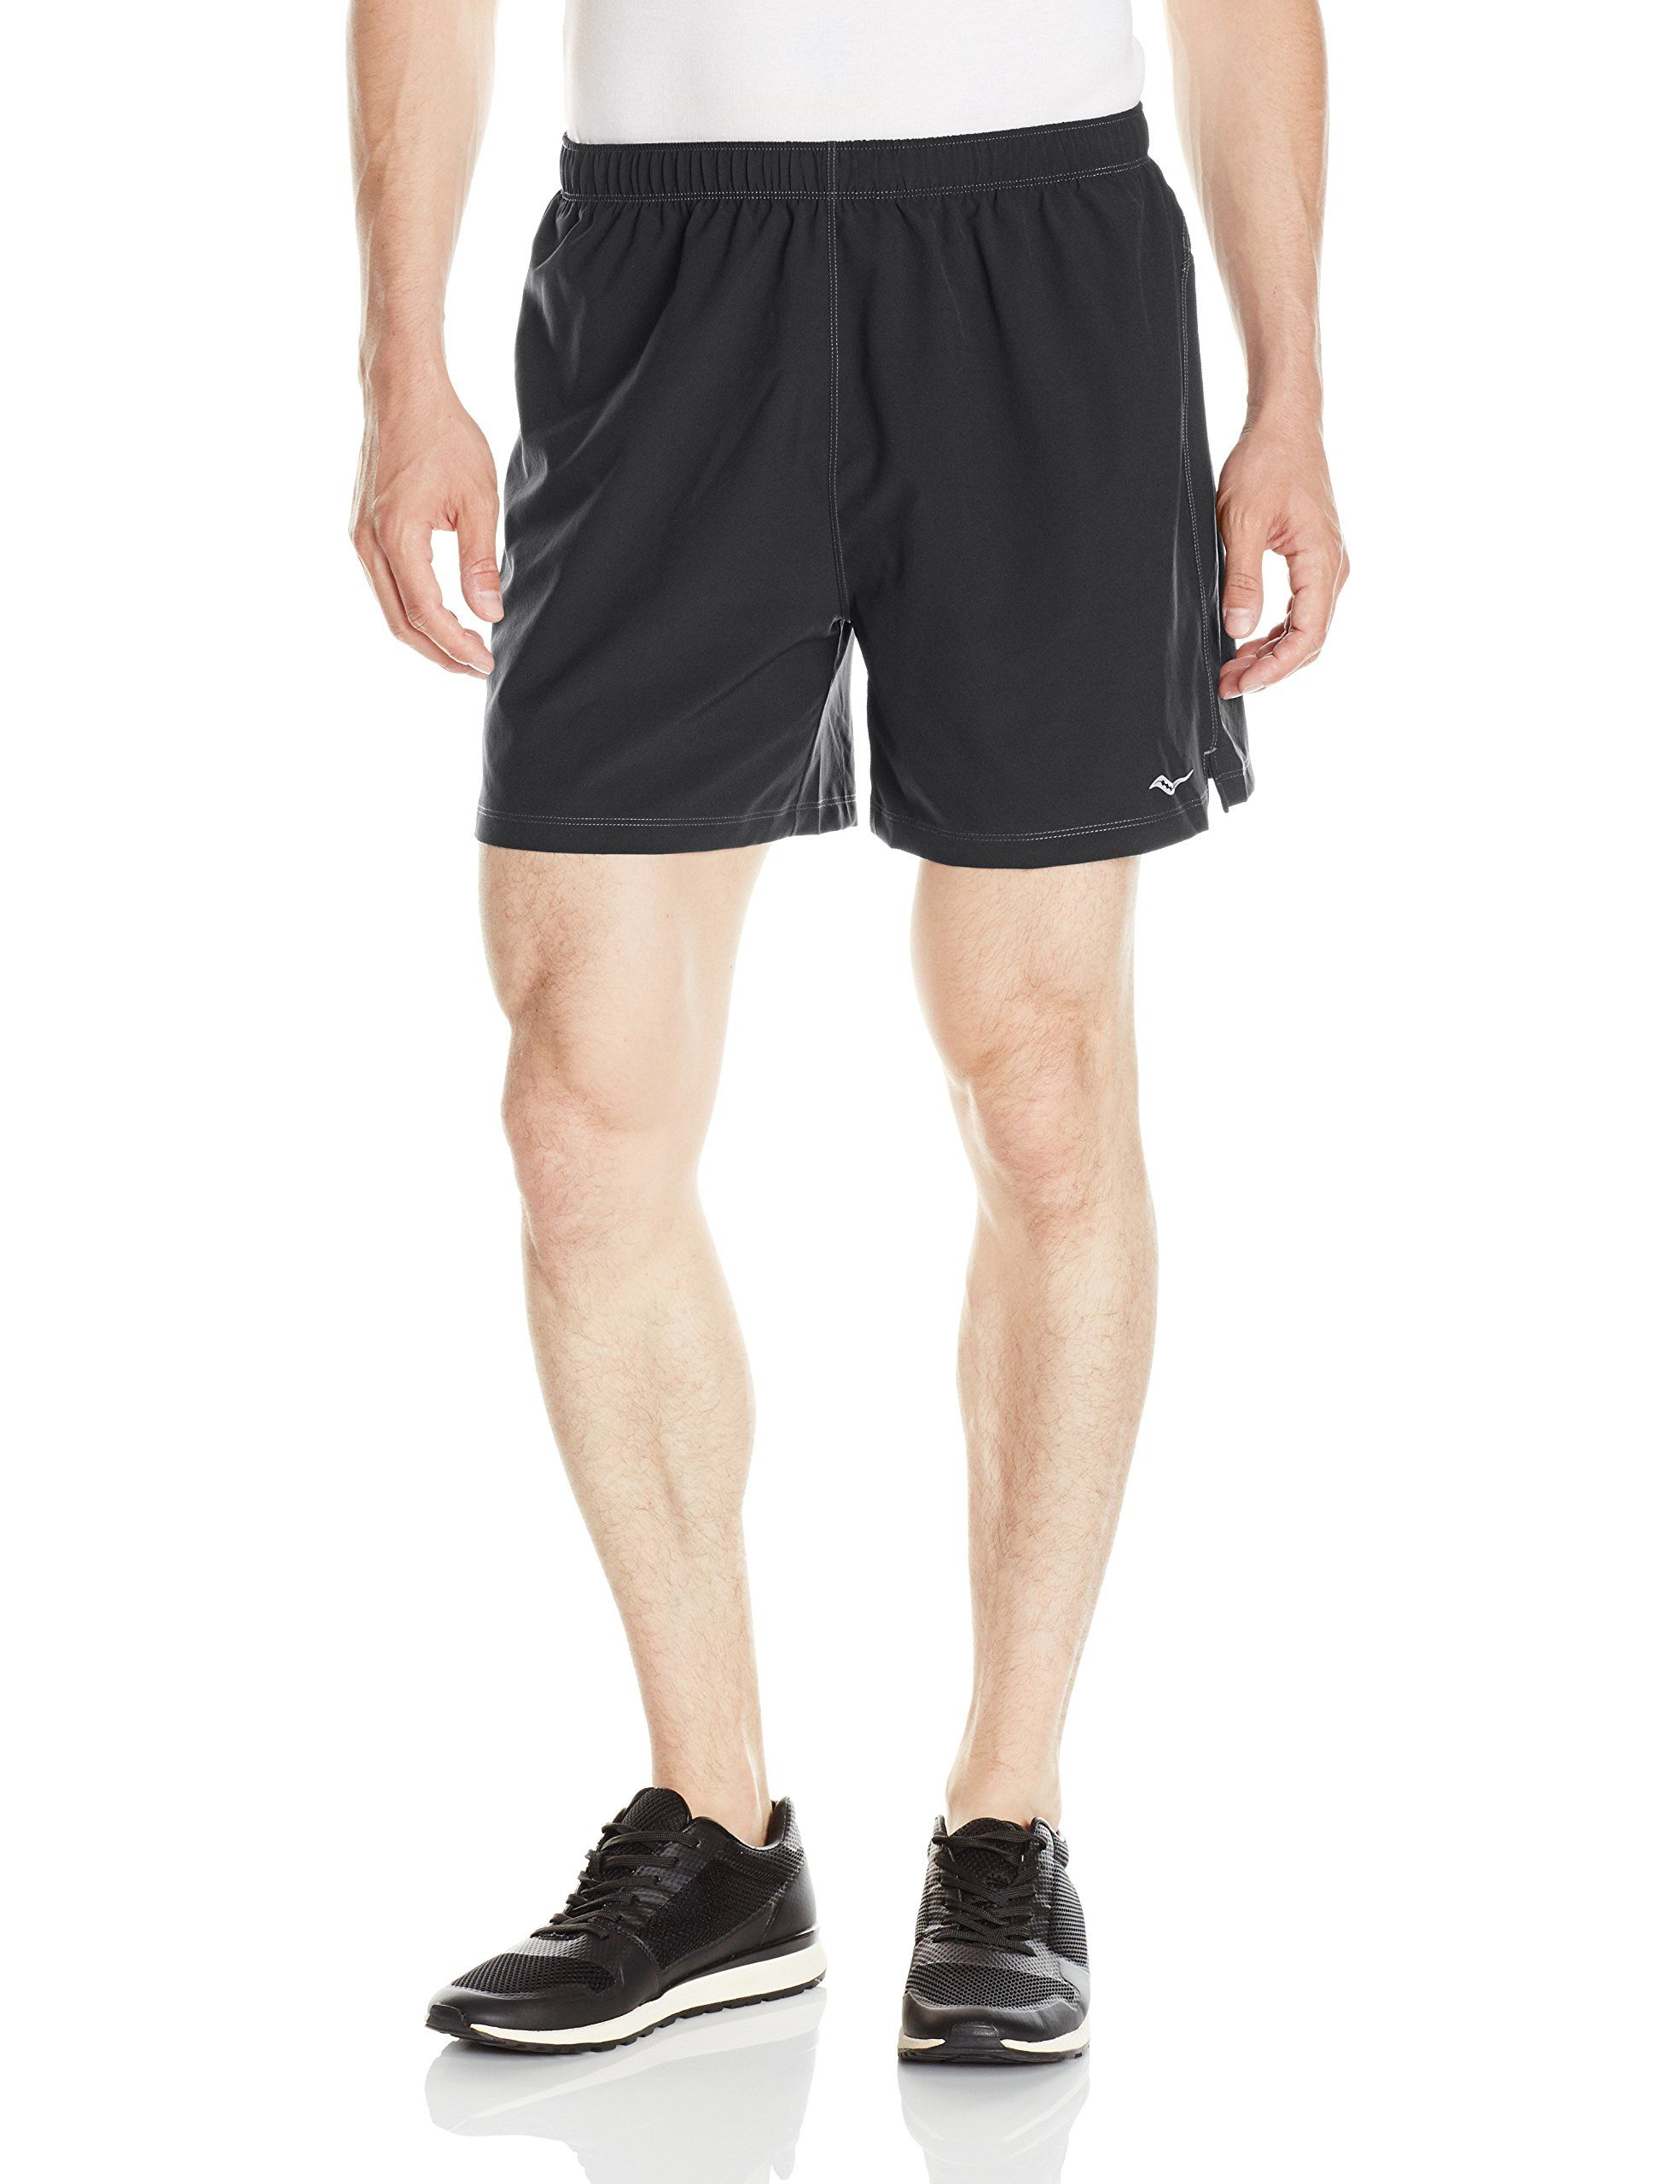 Saucony Men's Alpha Shorts, X-Large, Midnight/Midnight: This Saucony  classic is tops when it comes to bottoms, just right for any run with  stretch woven ...